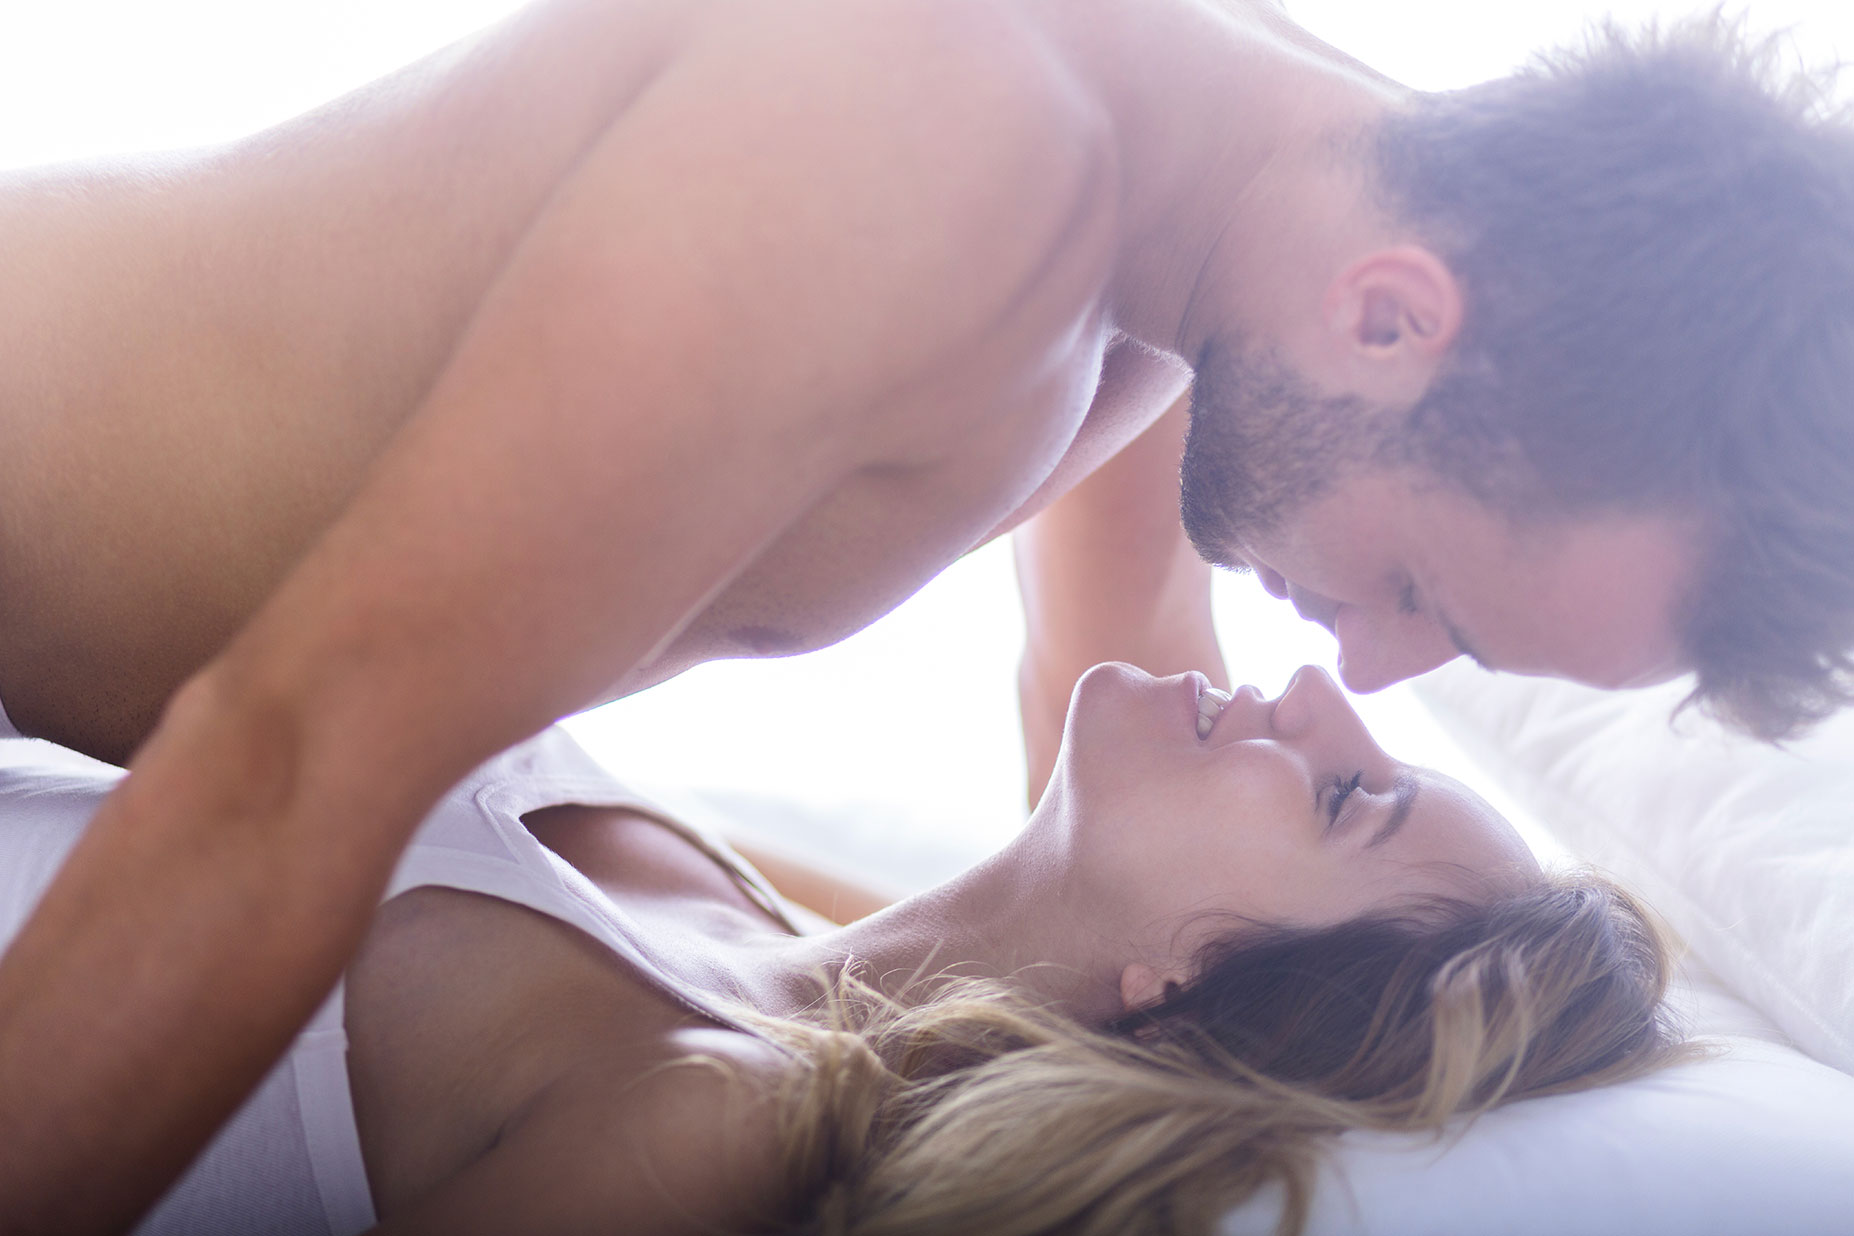 sex facts and fiction: misconceptions and myths about sex | greatist